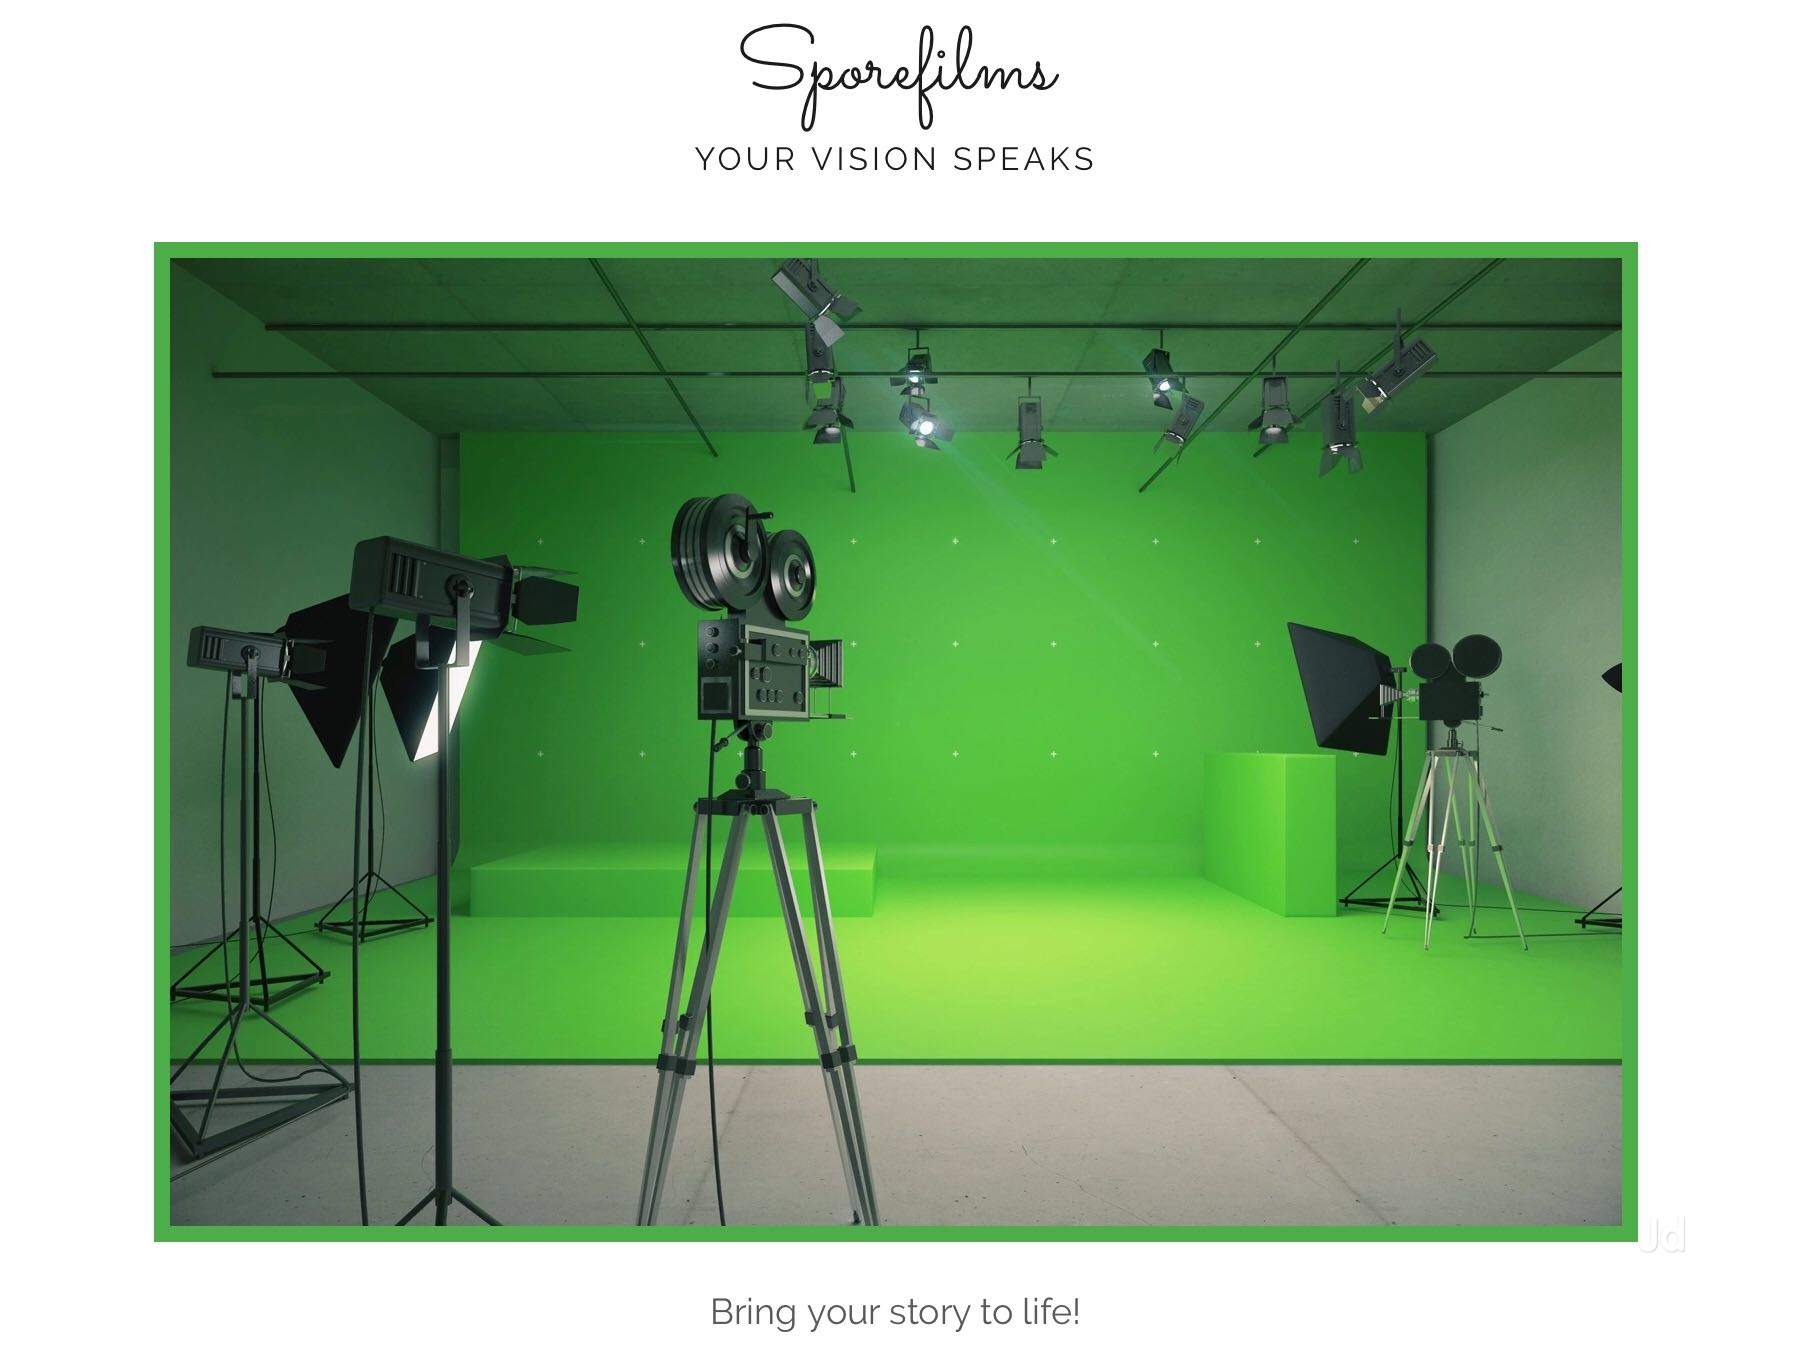 Top 100 Video Editing Services in Hyderabad - Best Video